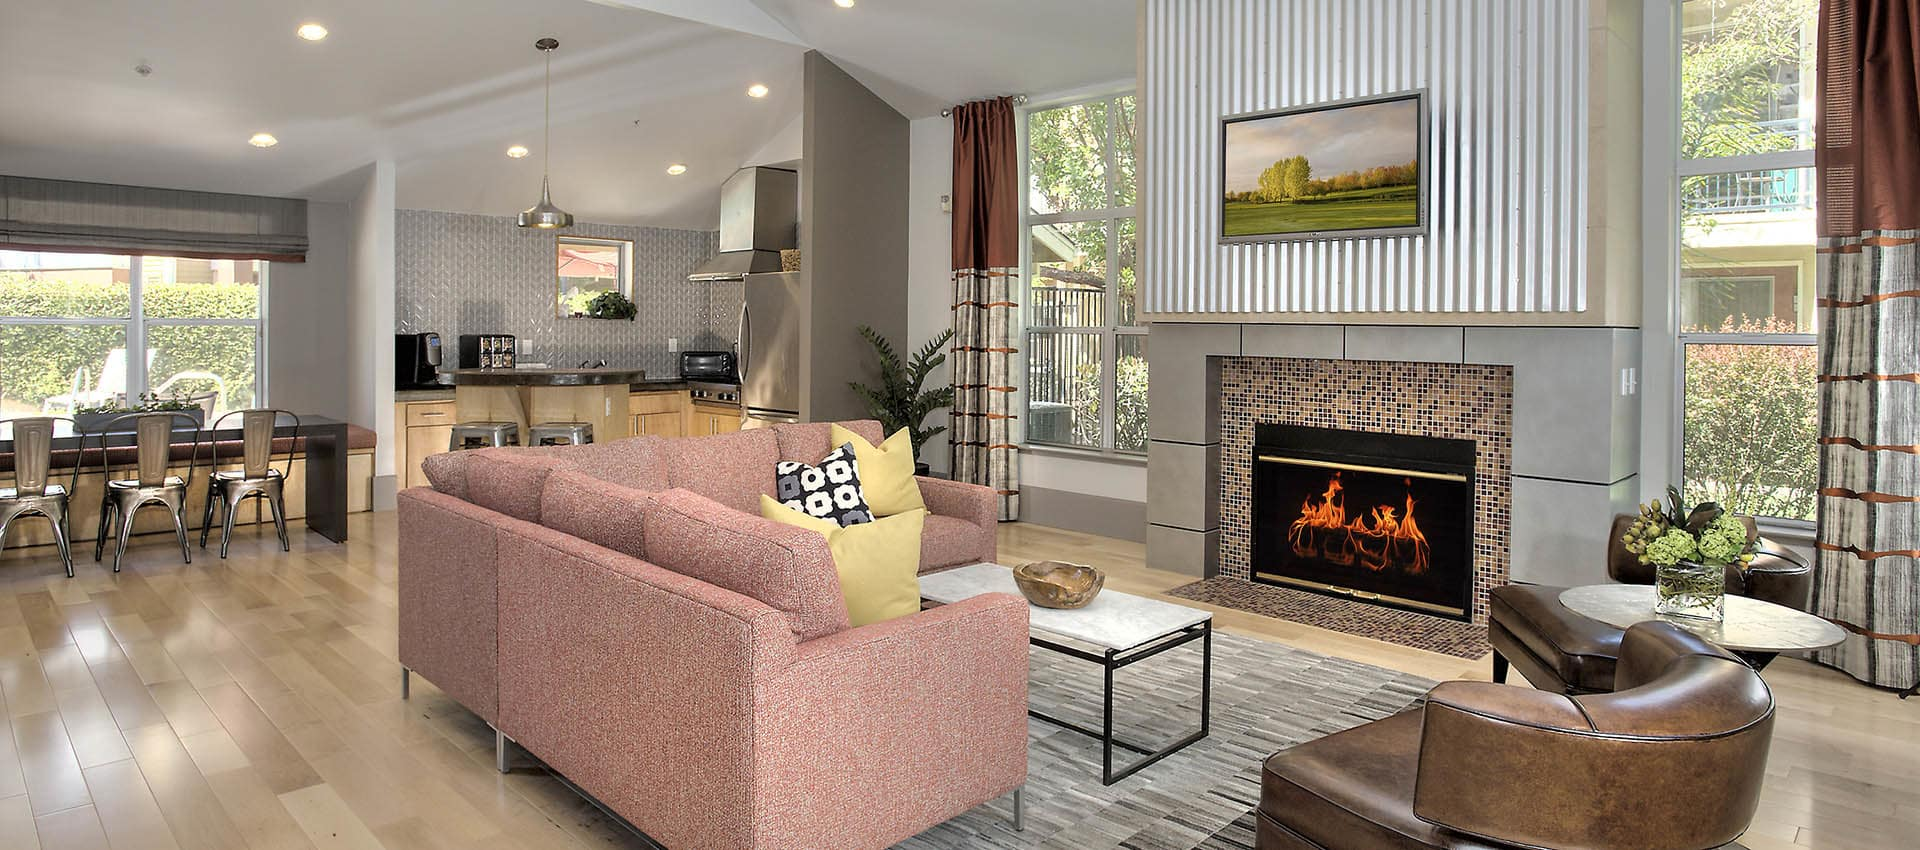 Seating Area And Fireplace In Clubhouse at Azure Apartment Homes in Petaluma, California